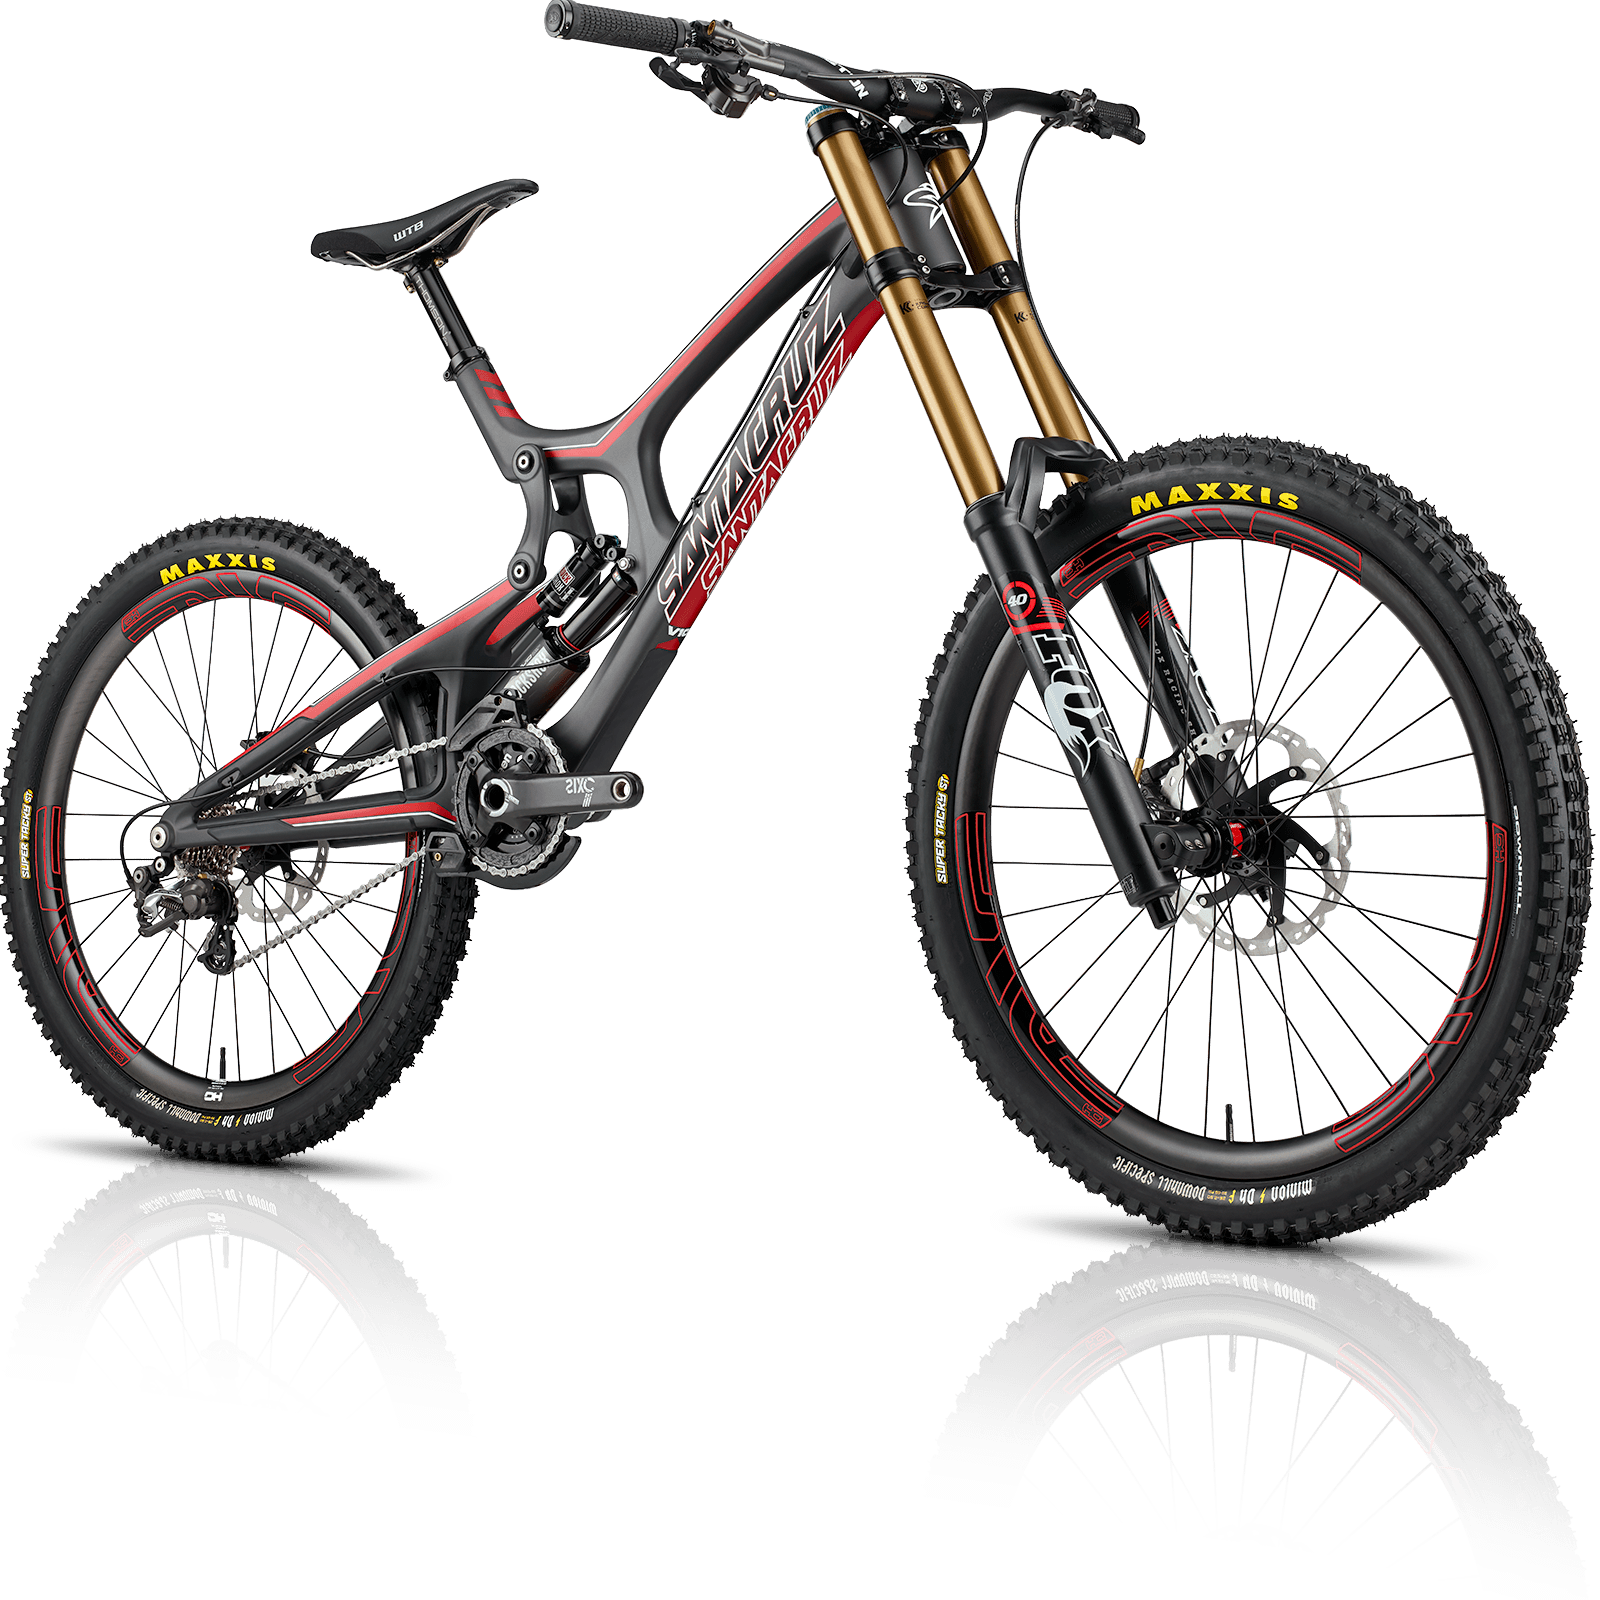 Bicycle Mtb Dh Bike Png Image PNG Image